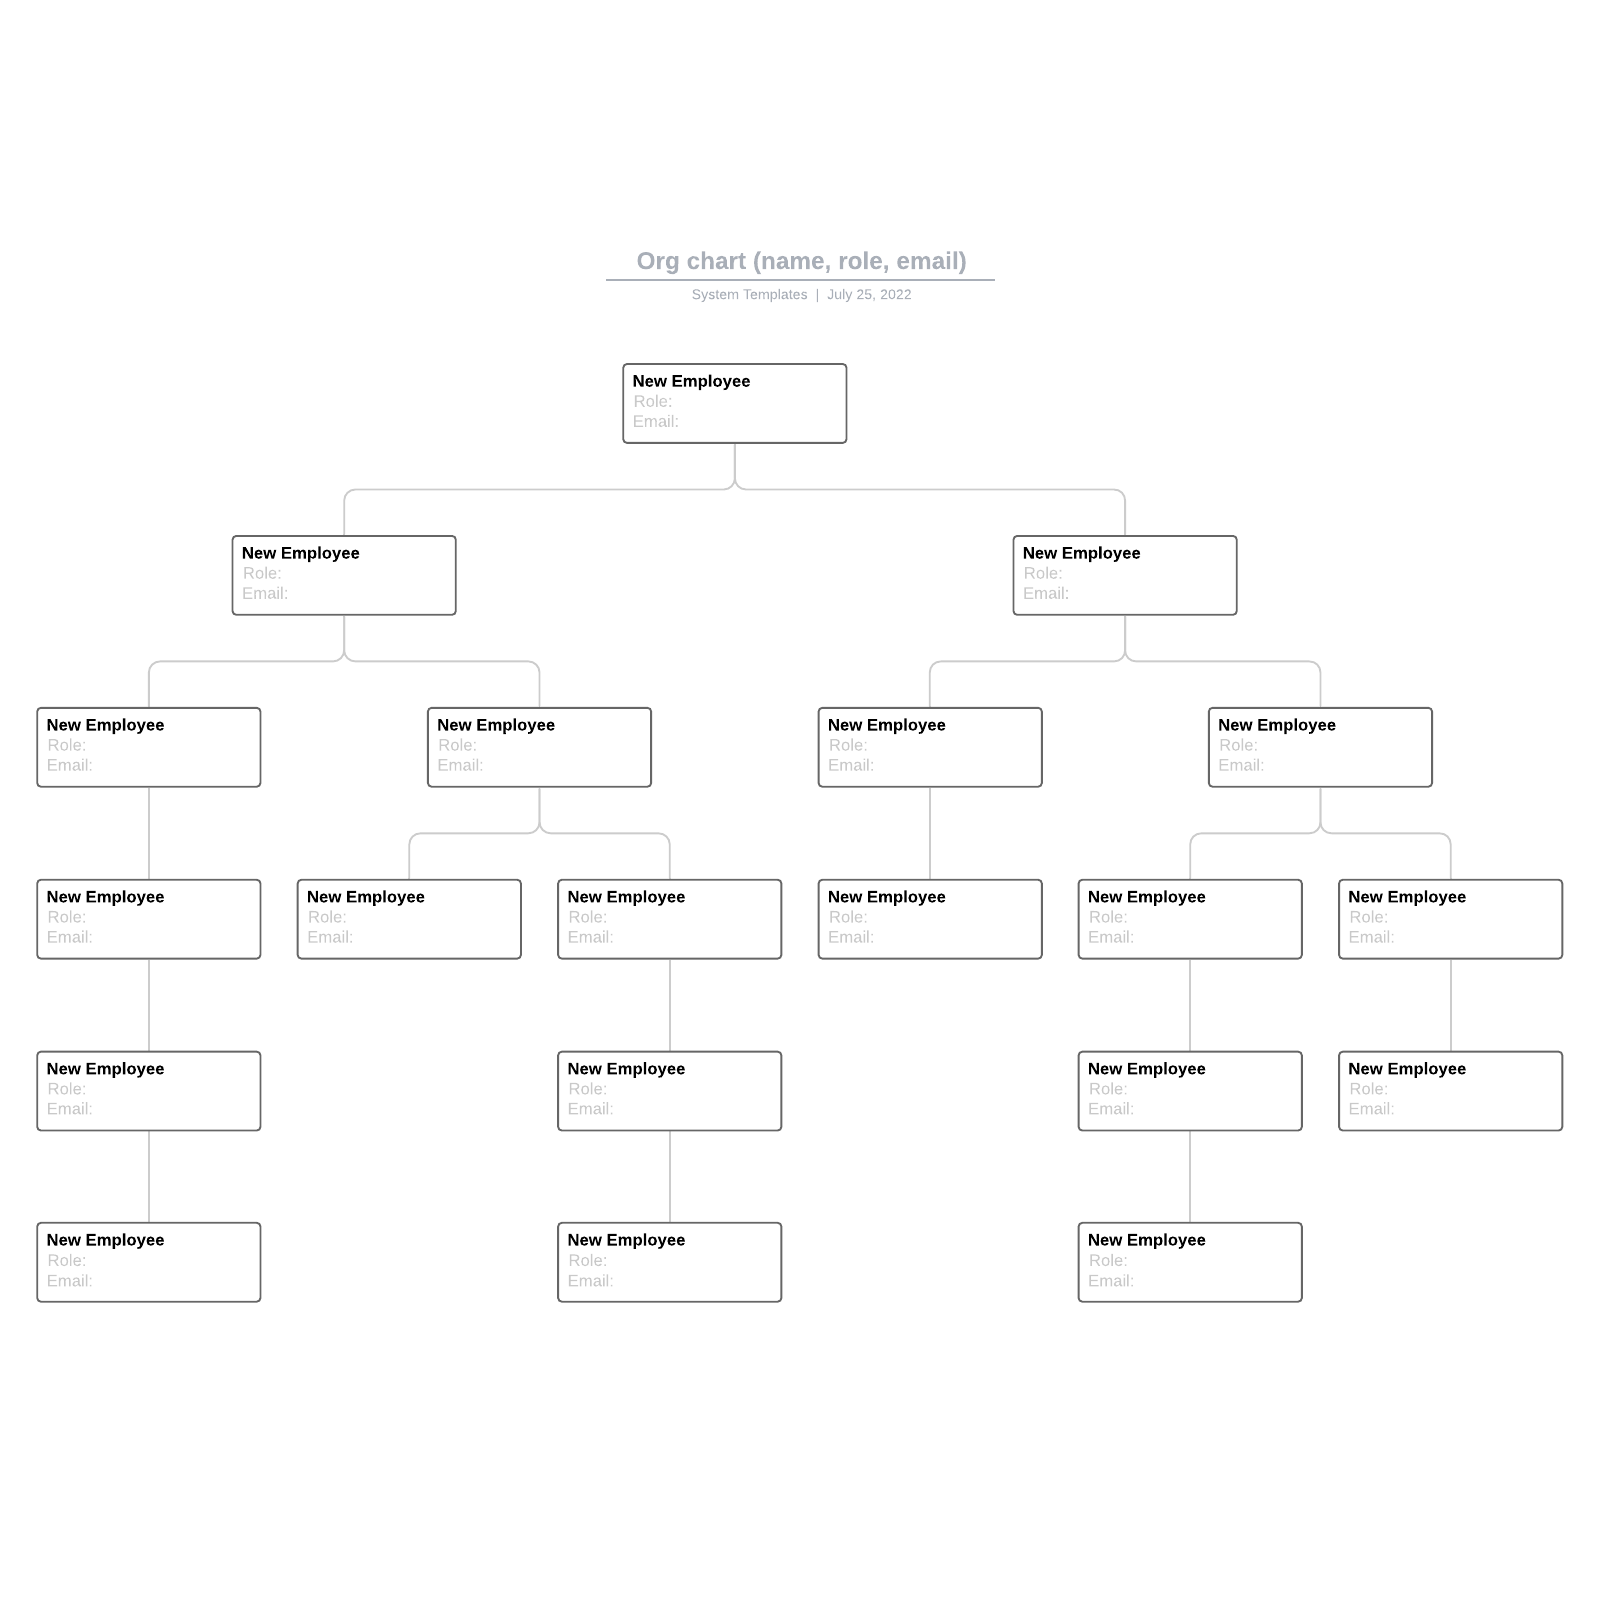 Org chart (name, role, email)